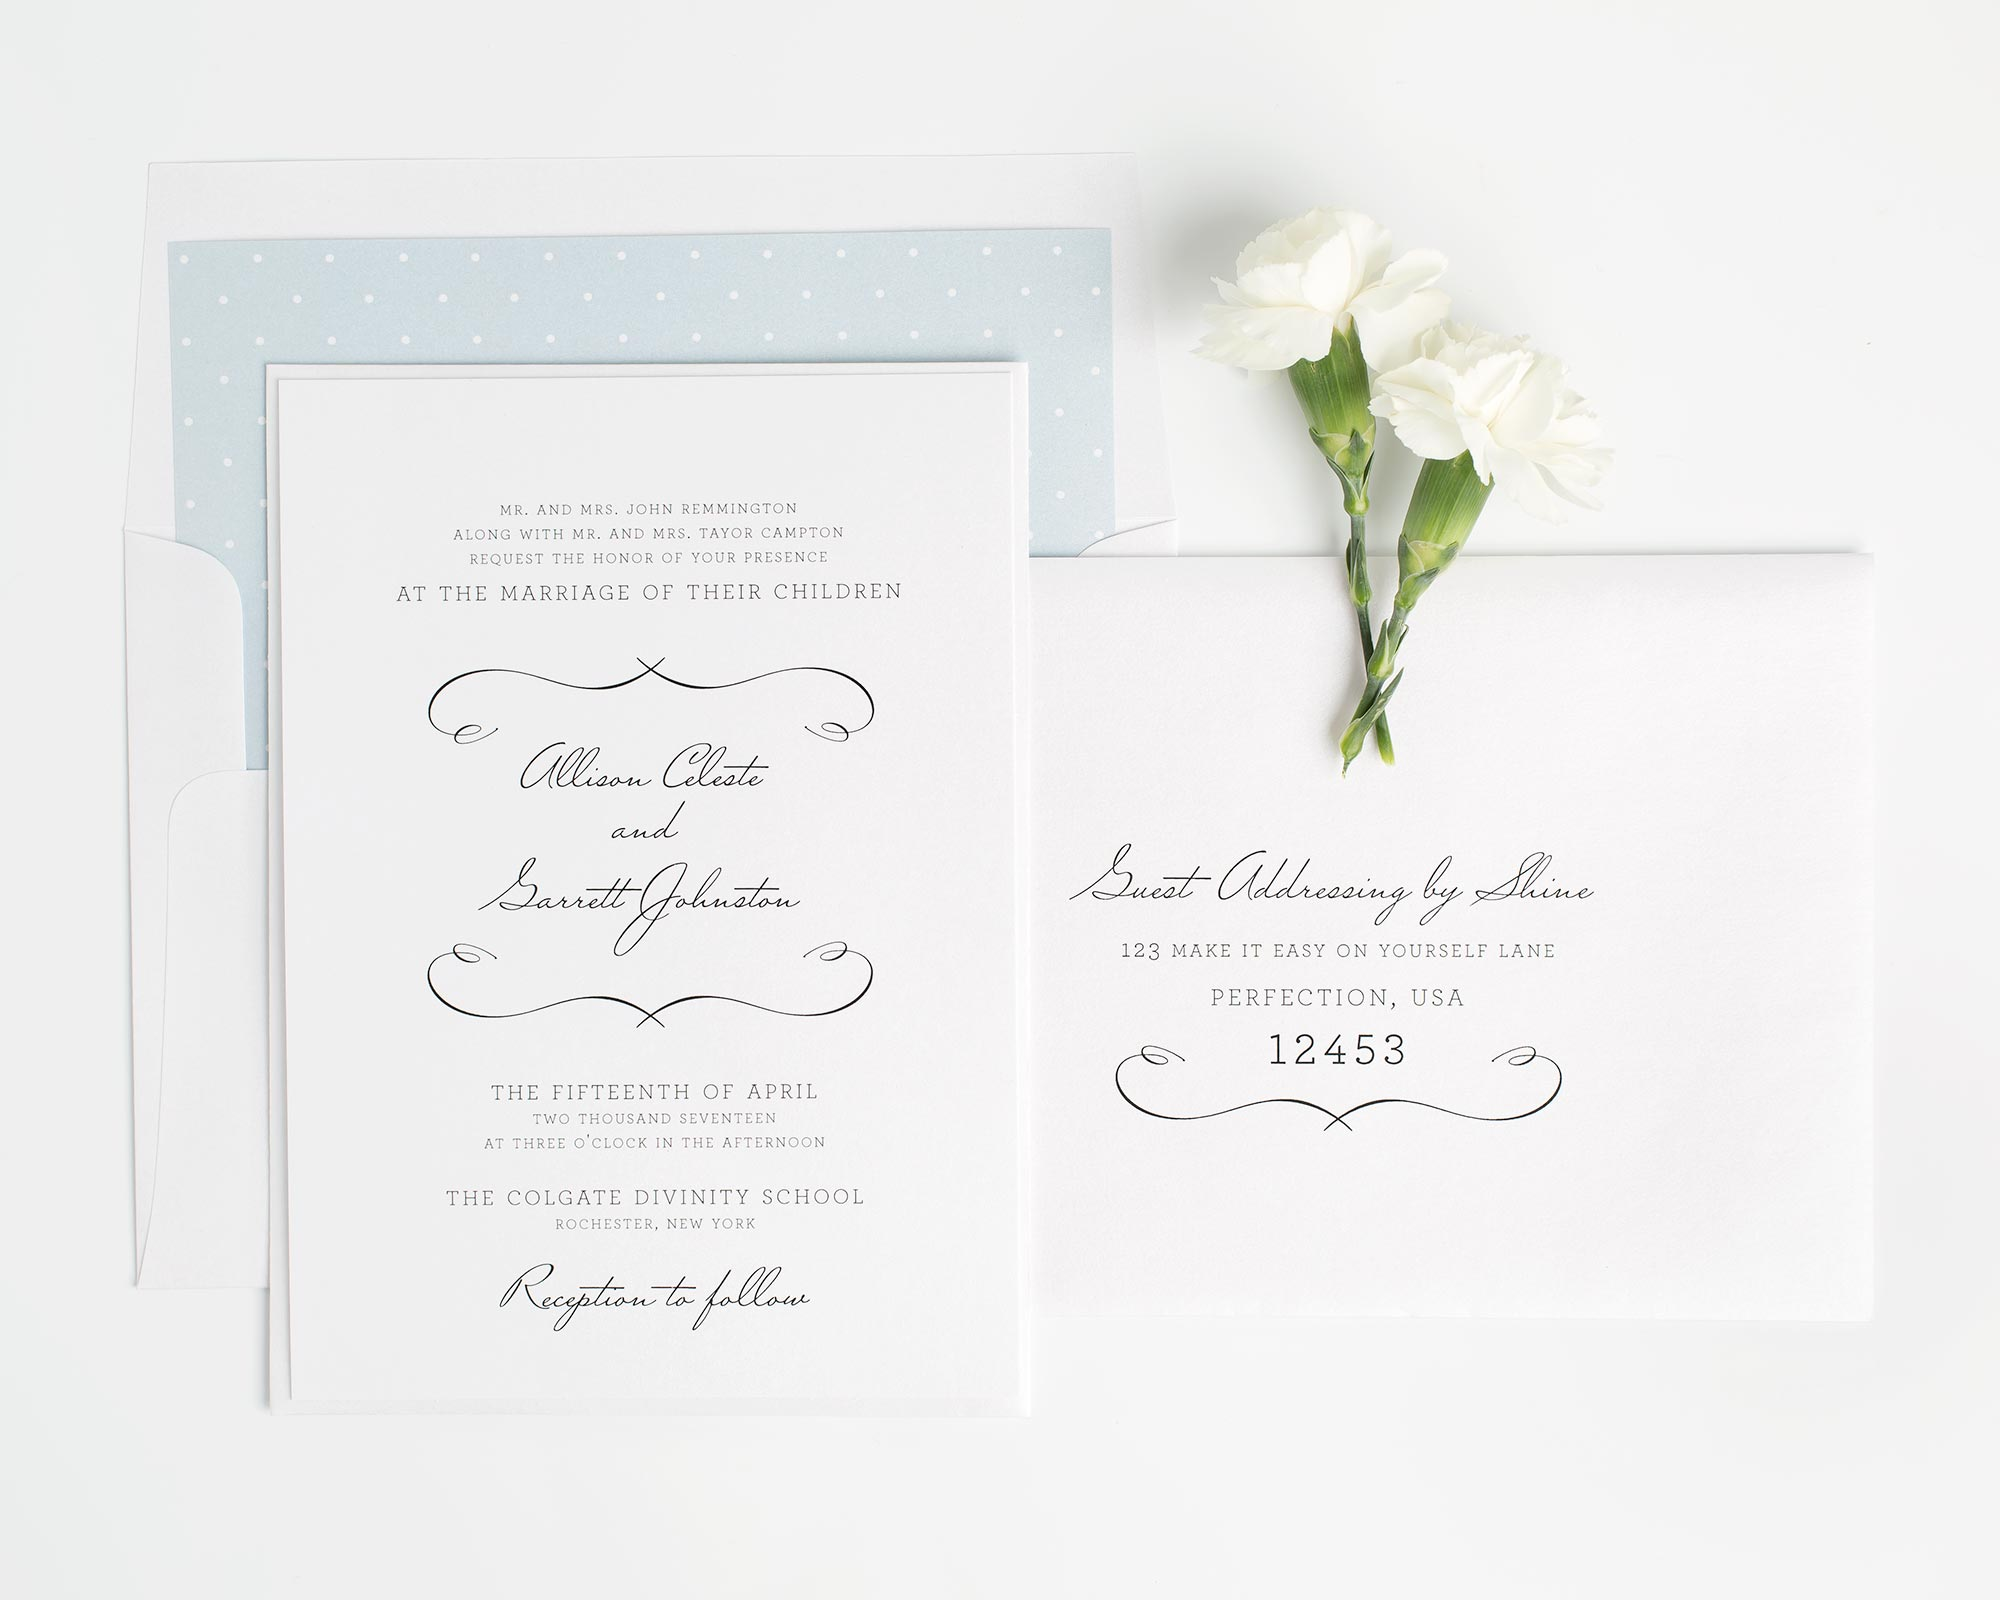 wedding invitation printing rochester ny - 28 images - 34 pics ...